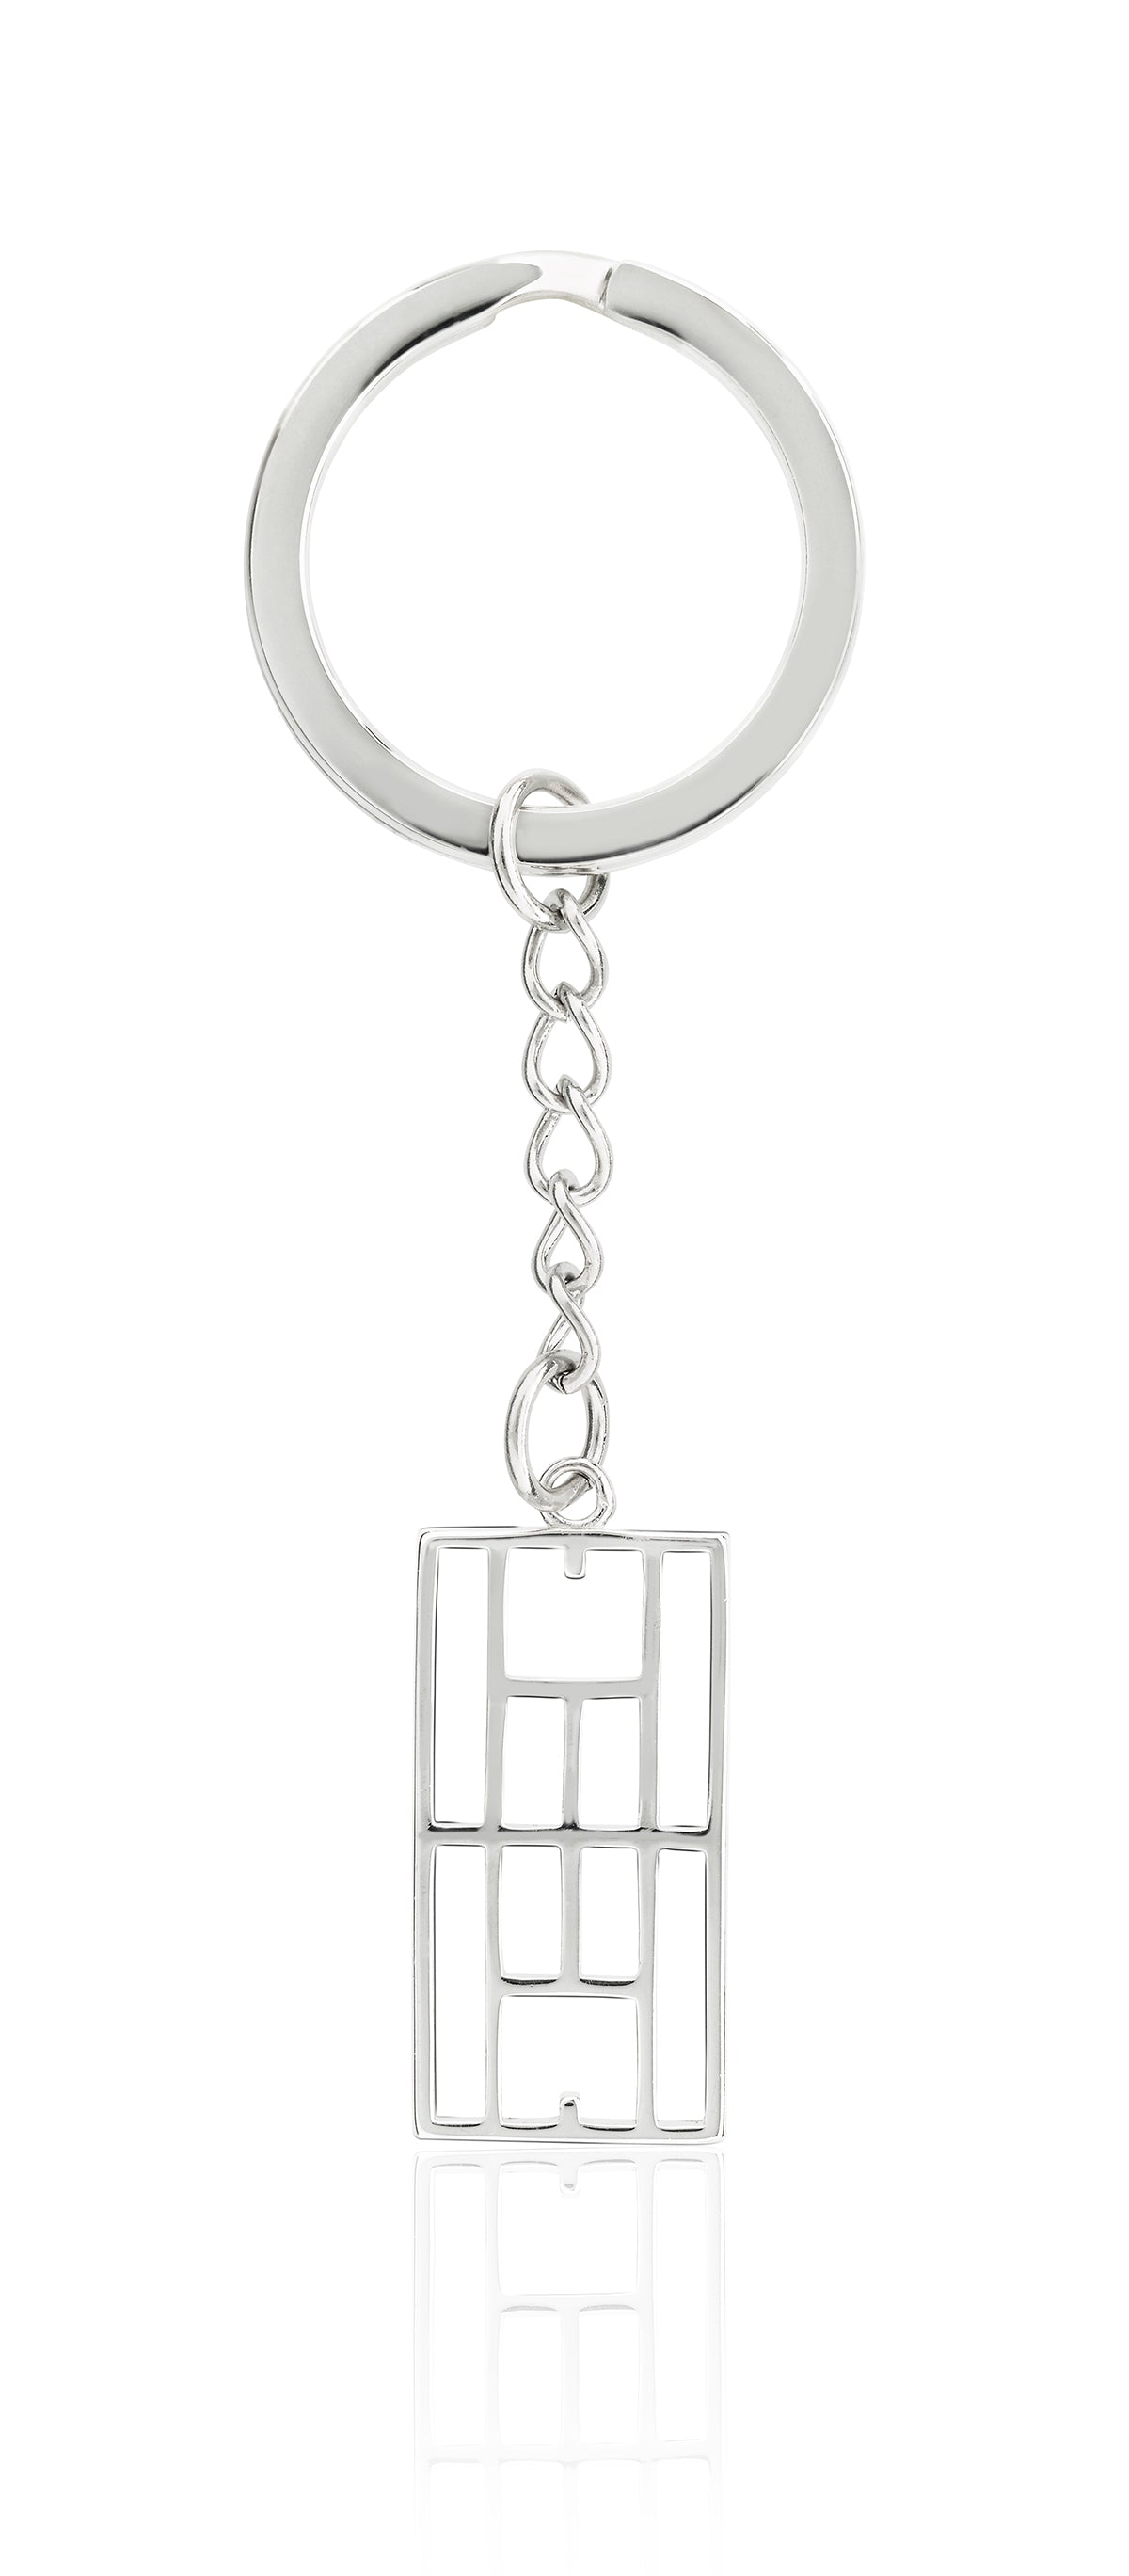 Calling the Lines Keychain